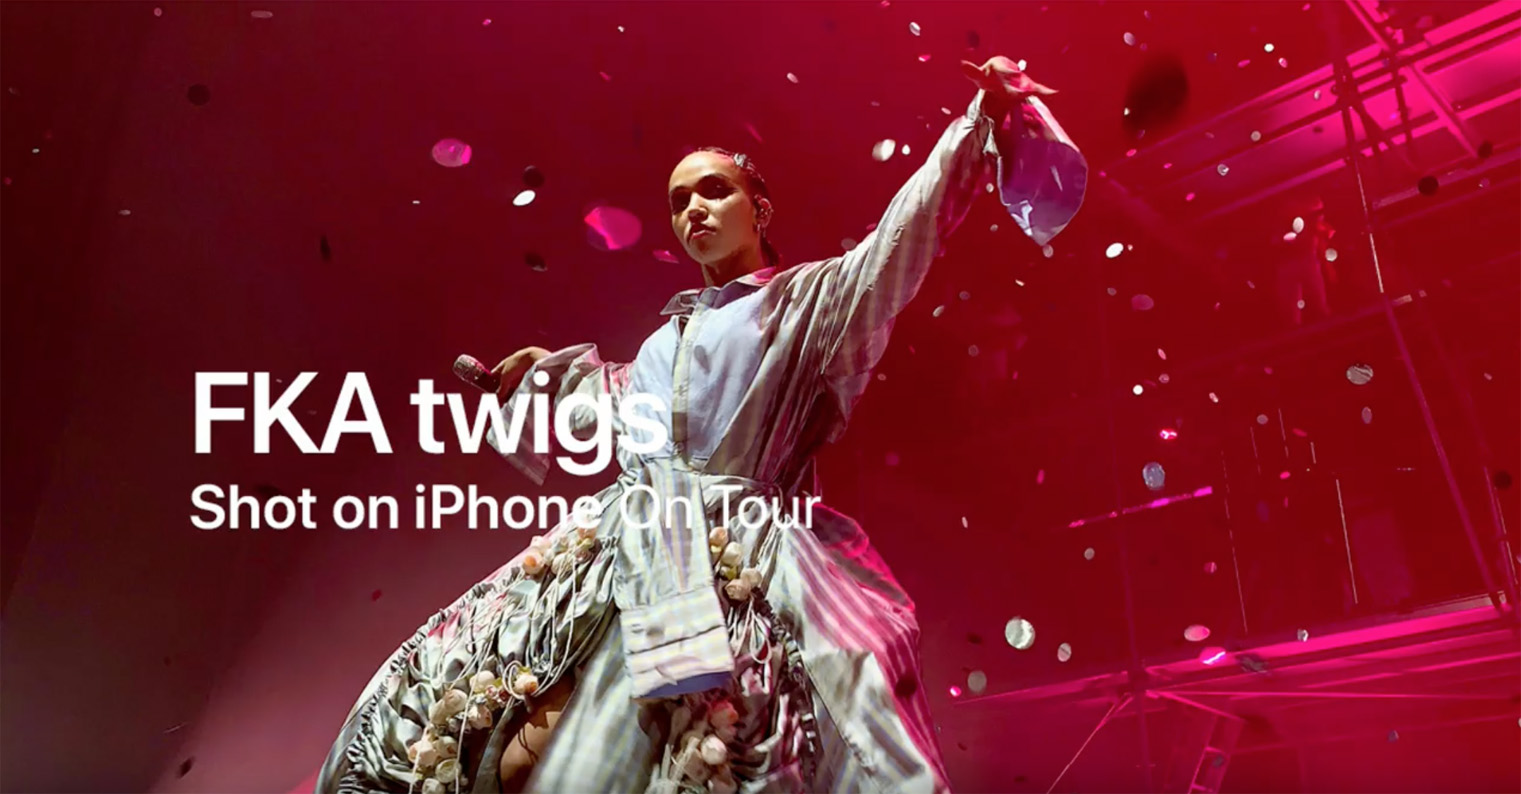 Apple heads on tour with latest 'Shot on iPhone' campaign featuring global music superstars